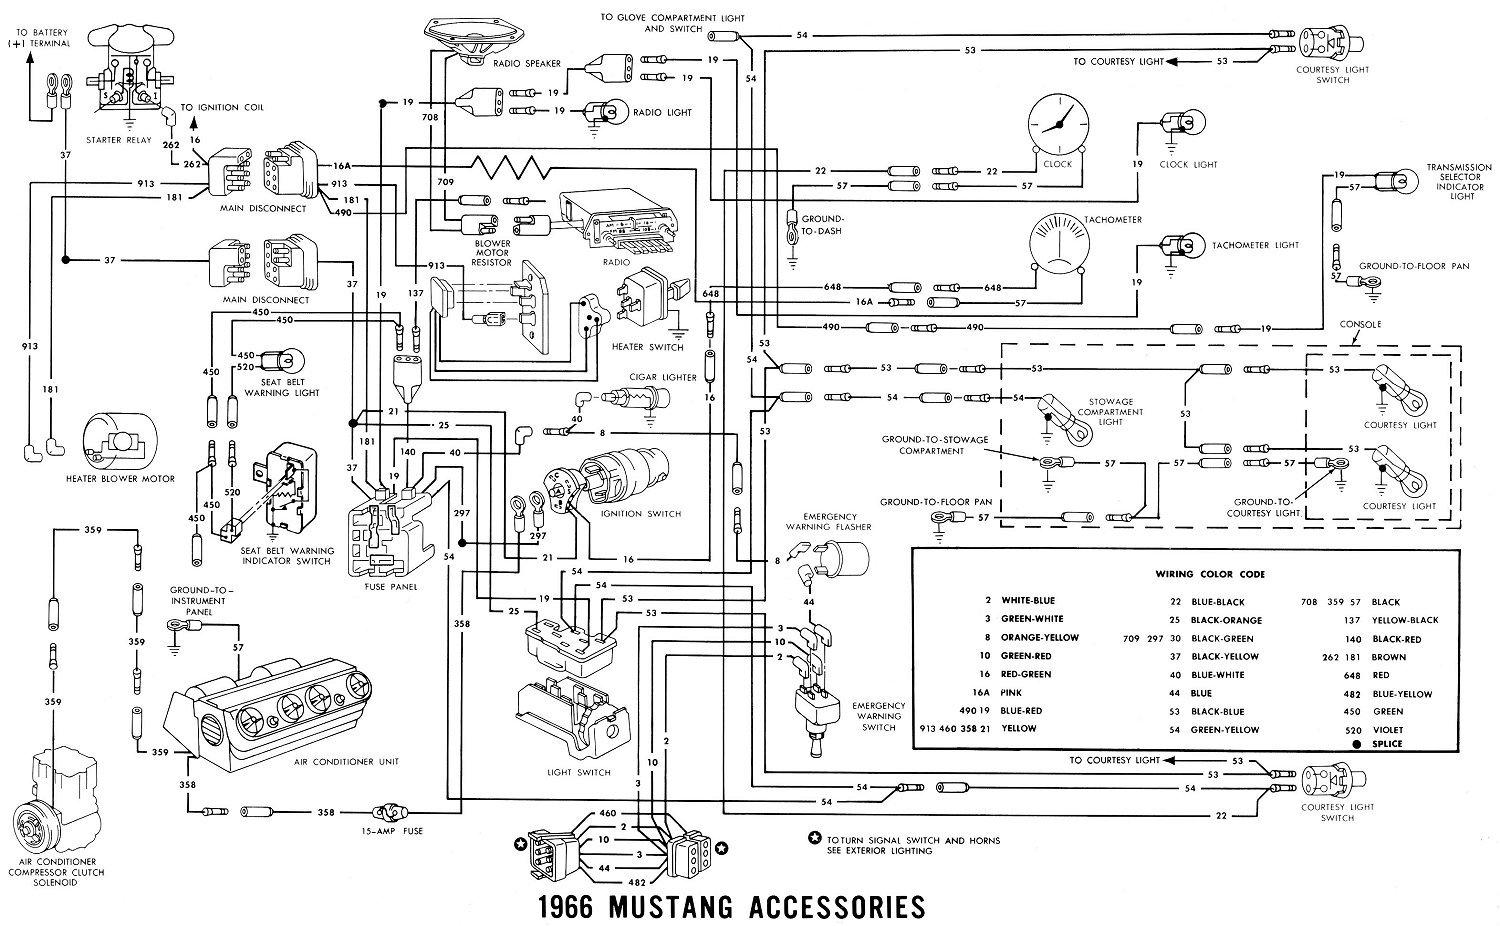 Mercury Cougar Stereo Wiring Diagram Library 1968 1973 Fuse Box Layout Diagrams U2022 Rh Laurafinlay Co Uk 77 Xr7